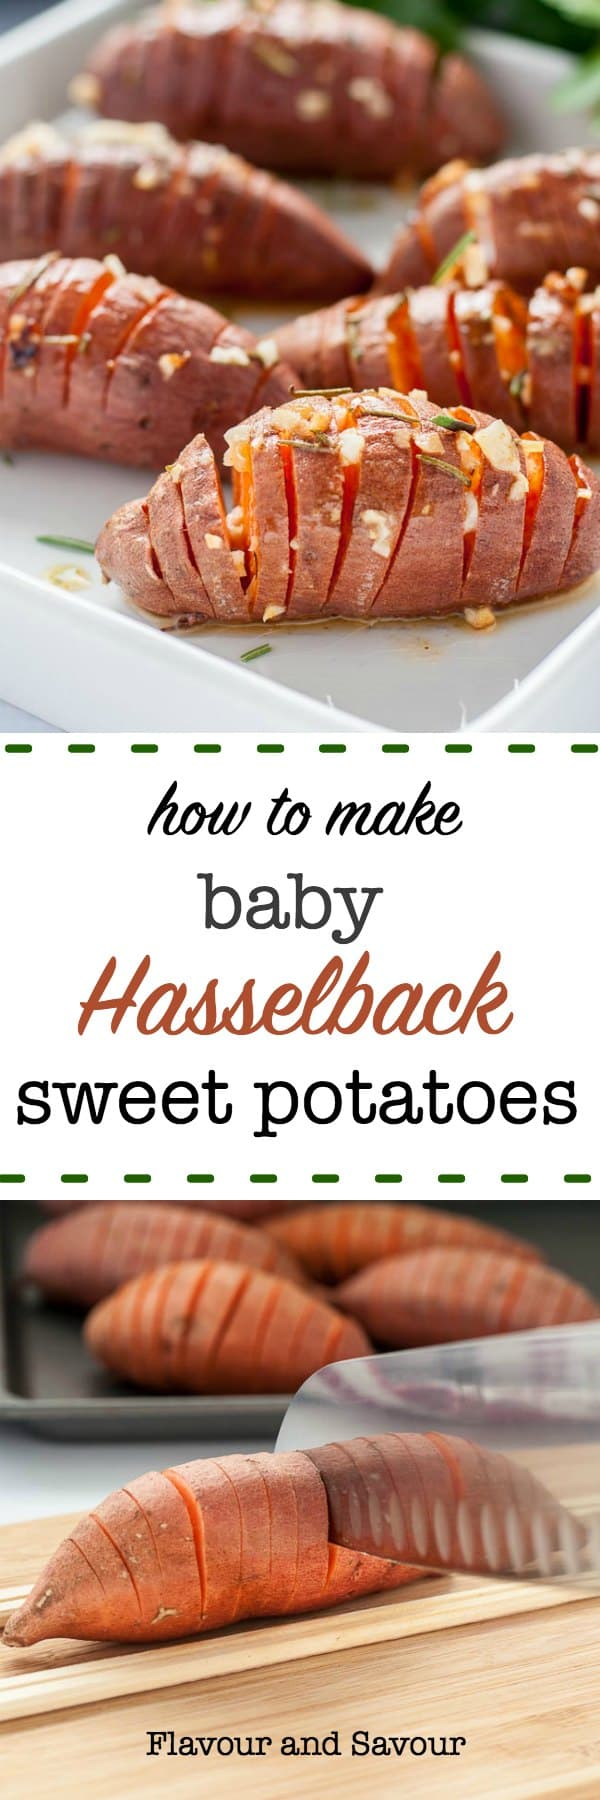 Baby Hasselback Sweet Potatoes with Garlic Herb Butter make a striking side dish. Slice potatoes thinly keeping the base intact, fan accordion-style, and baste with herb butter. #baby #mini #sweet_potatoes #sidedish#Hasselback #garlic_butter #flavourandsavour